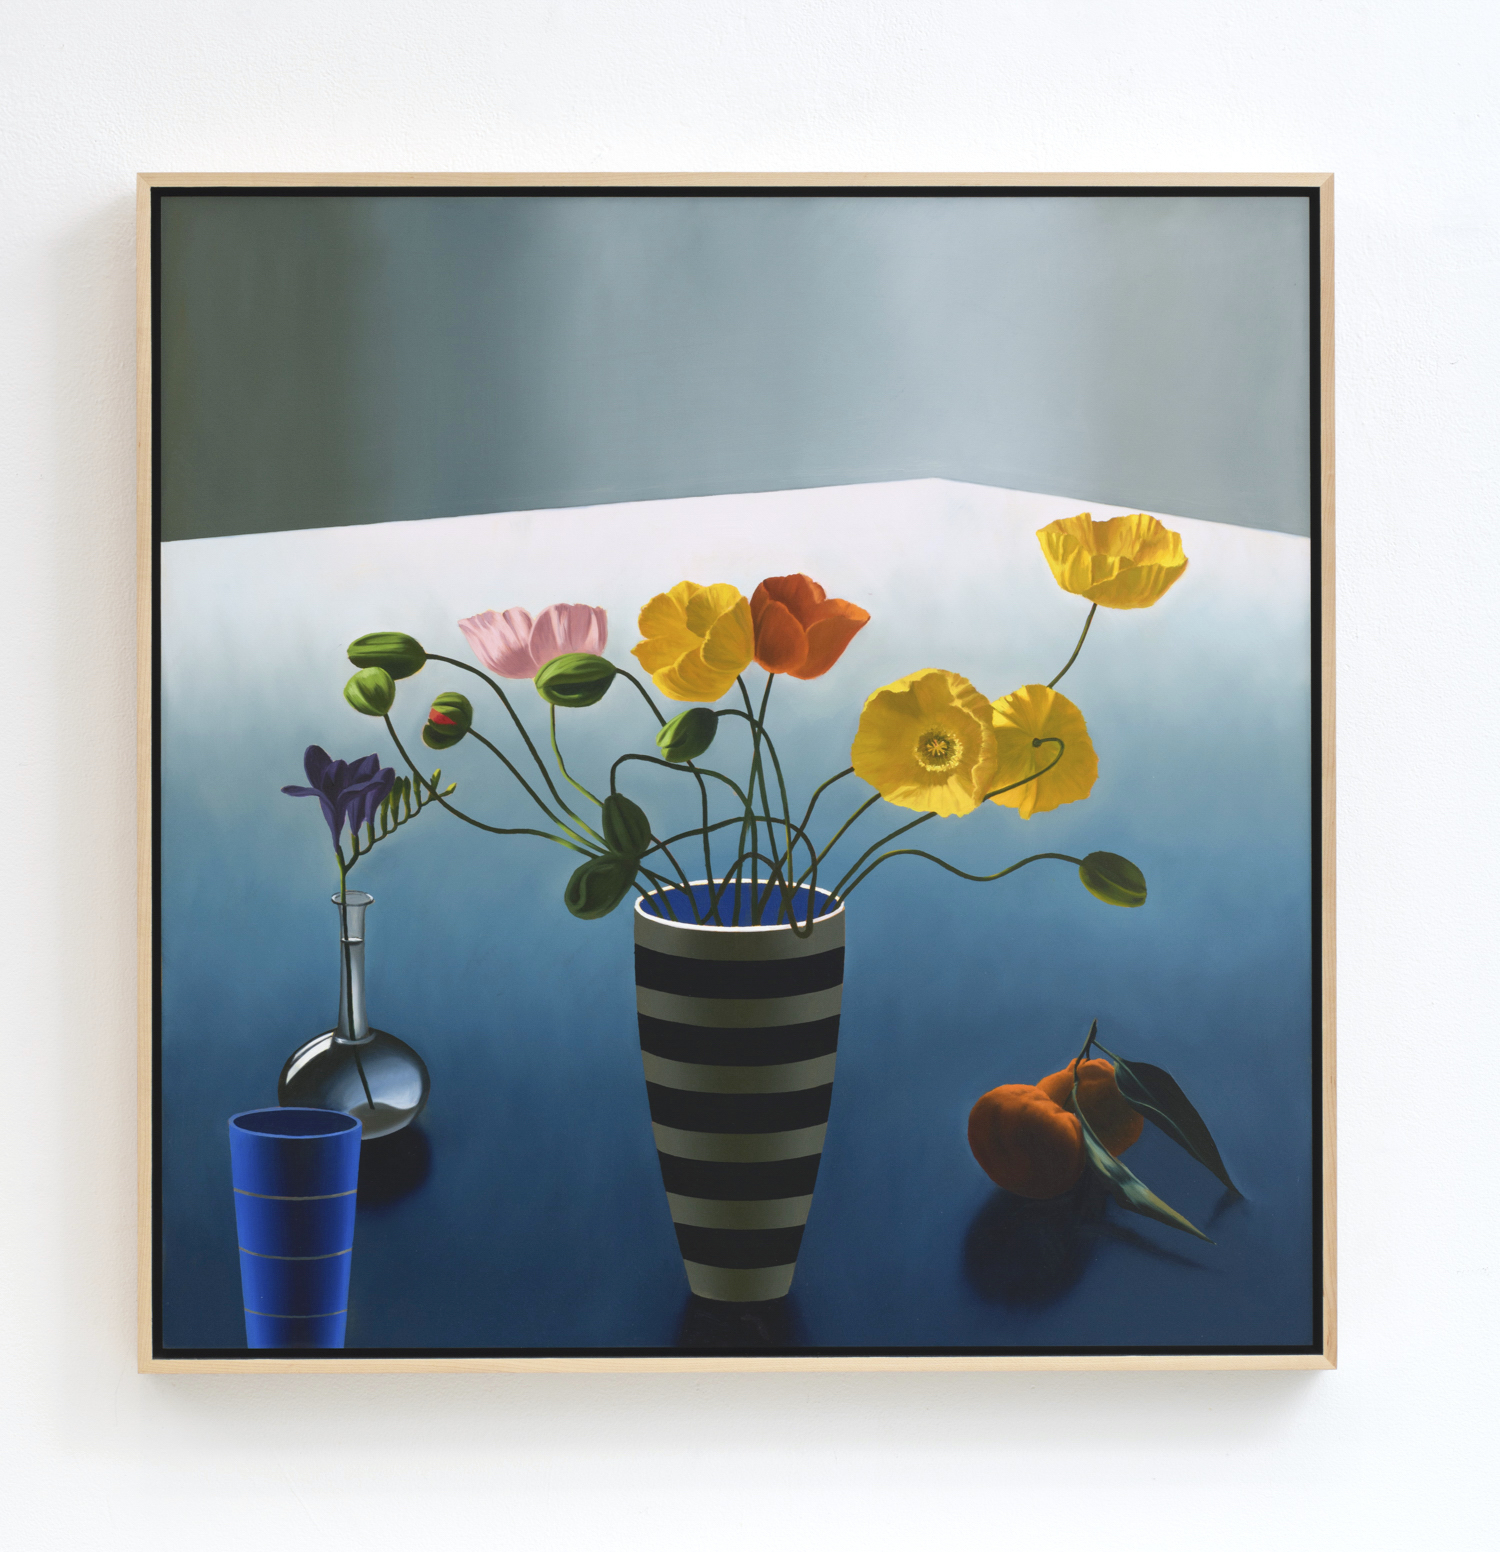 Still Life with Icelandic Poppies by Bruce Cohen